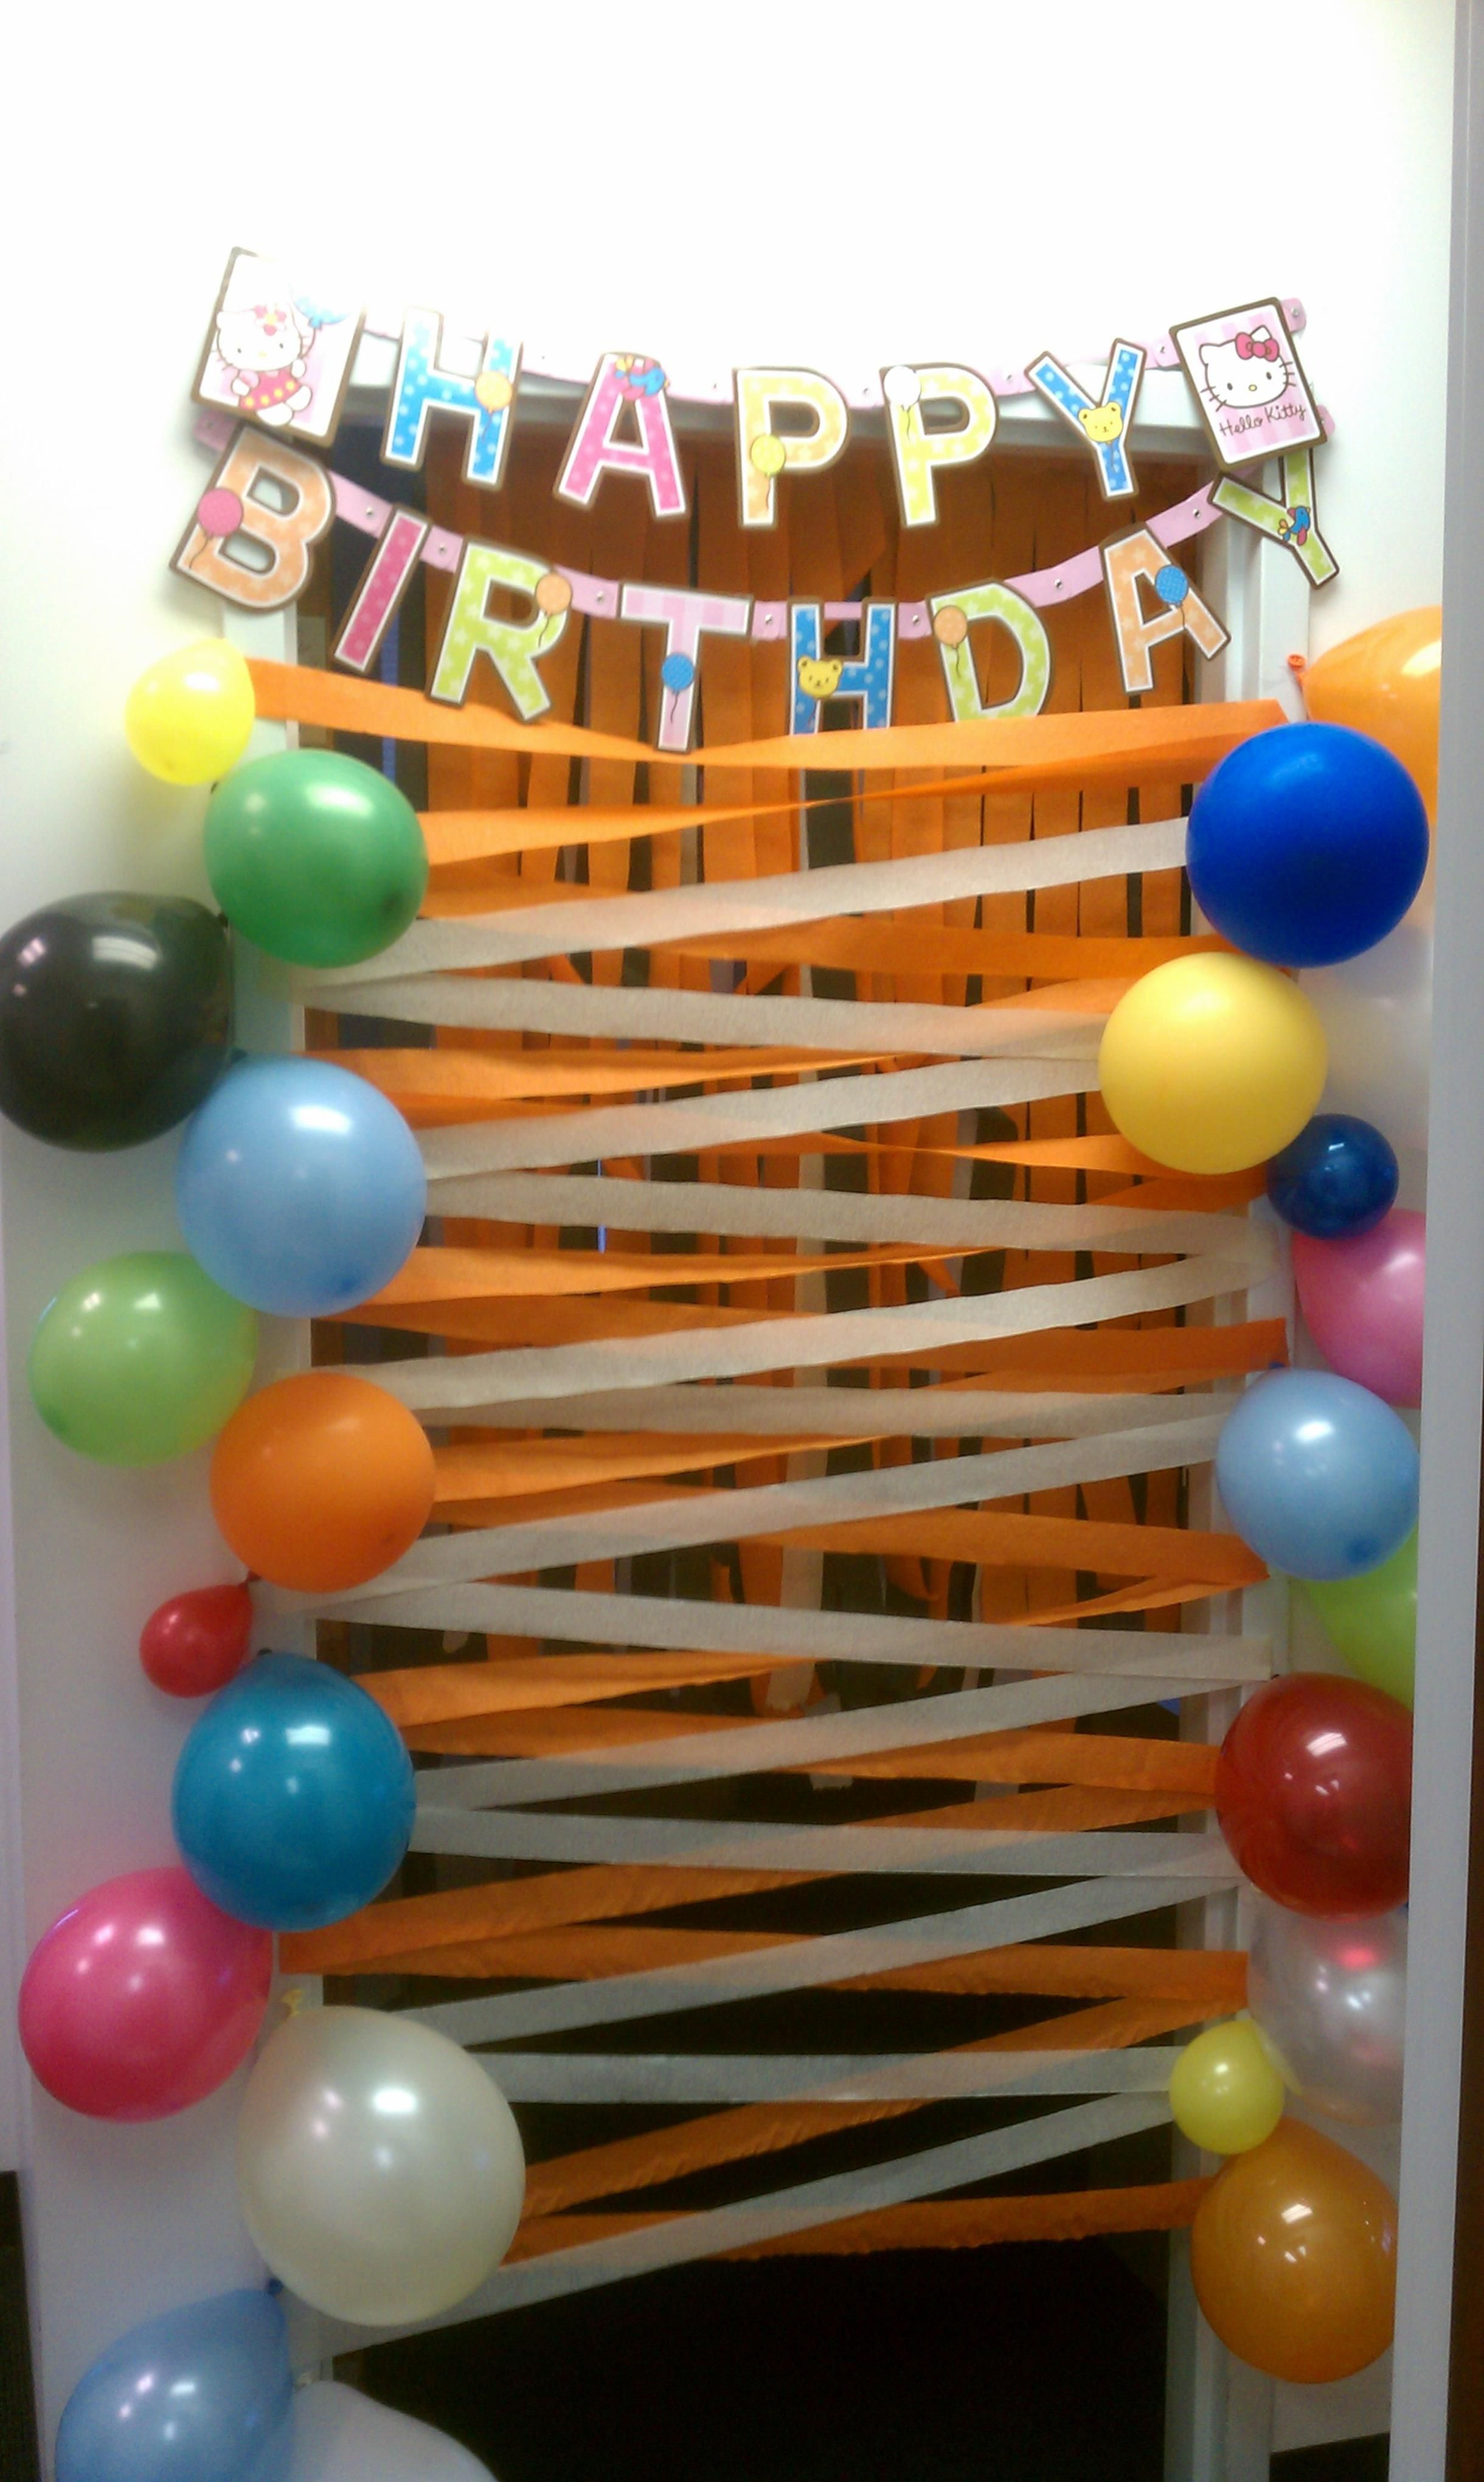 31 Stunning Decorating Ideas Birthday Surprise images